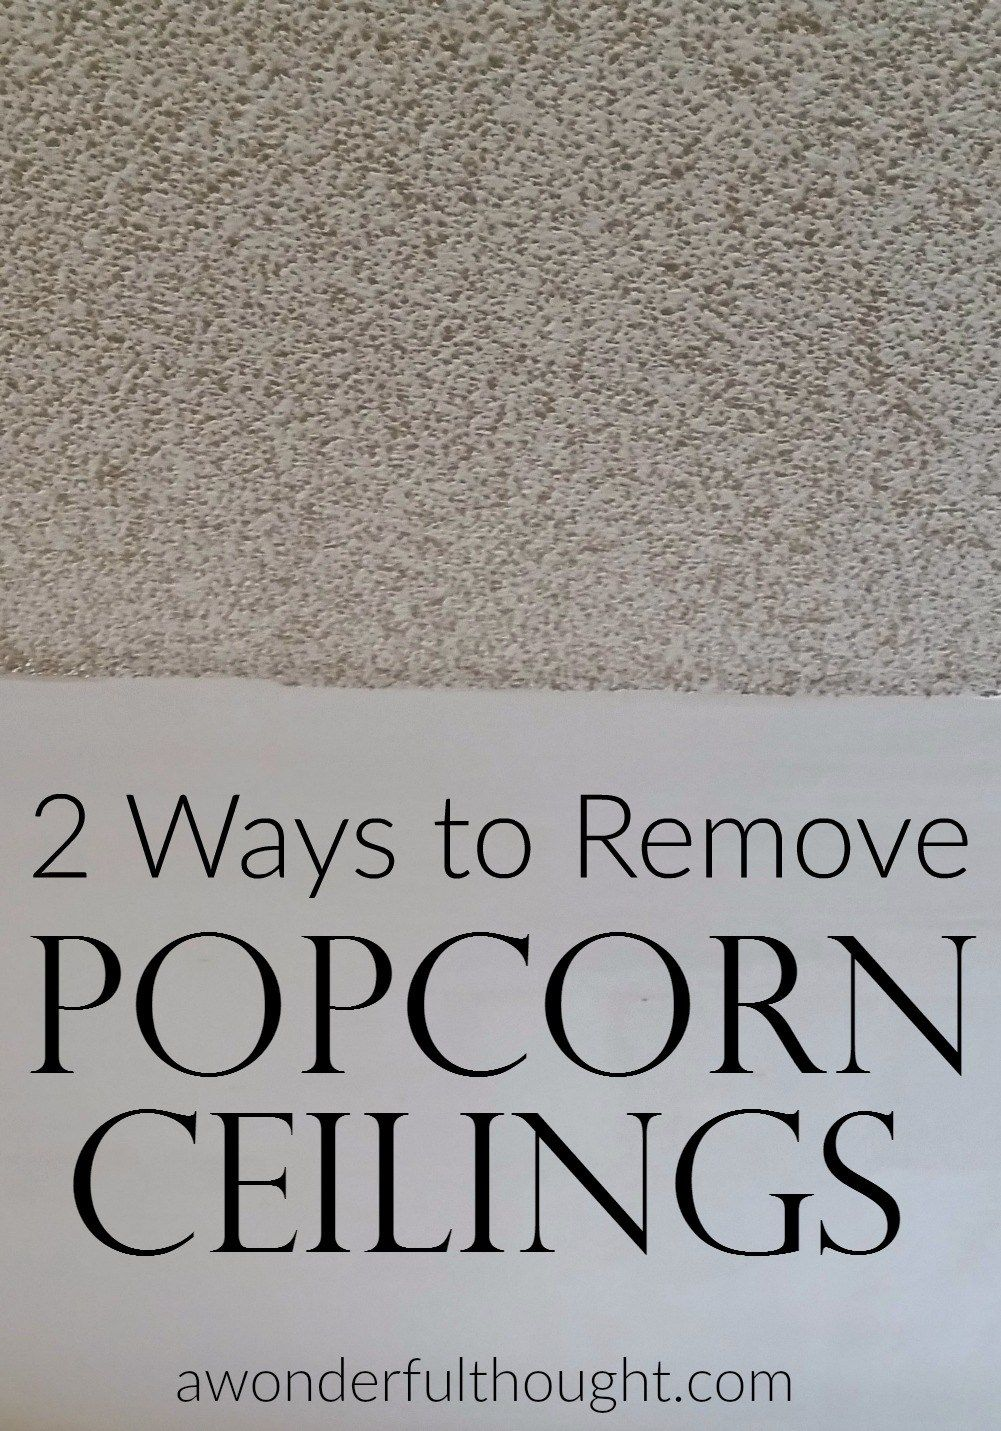 2 Ways To Remove Popcorn Ceilings A Wonderful Thought Removing Popcorn Ceiling Popcorn Ceiling Popcorn Ceiling Makeover